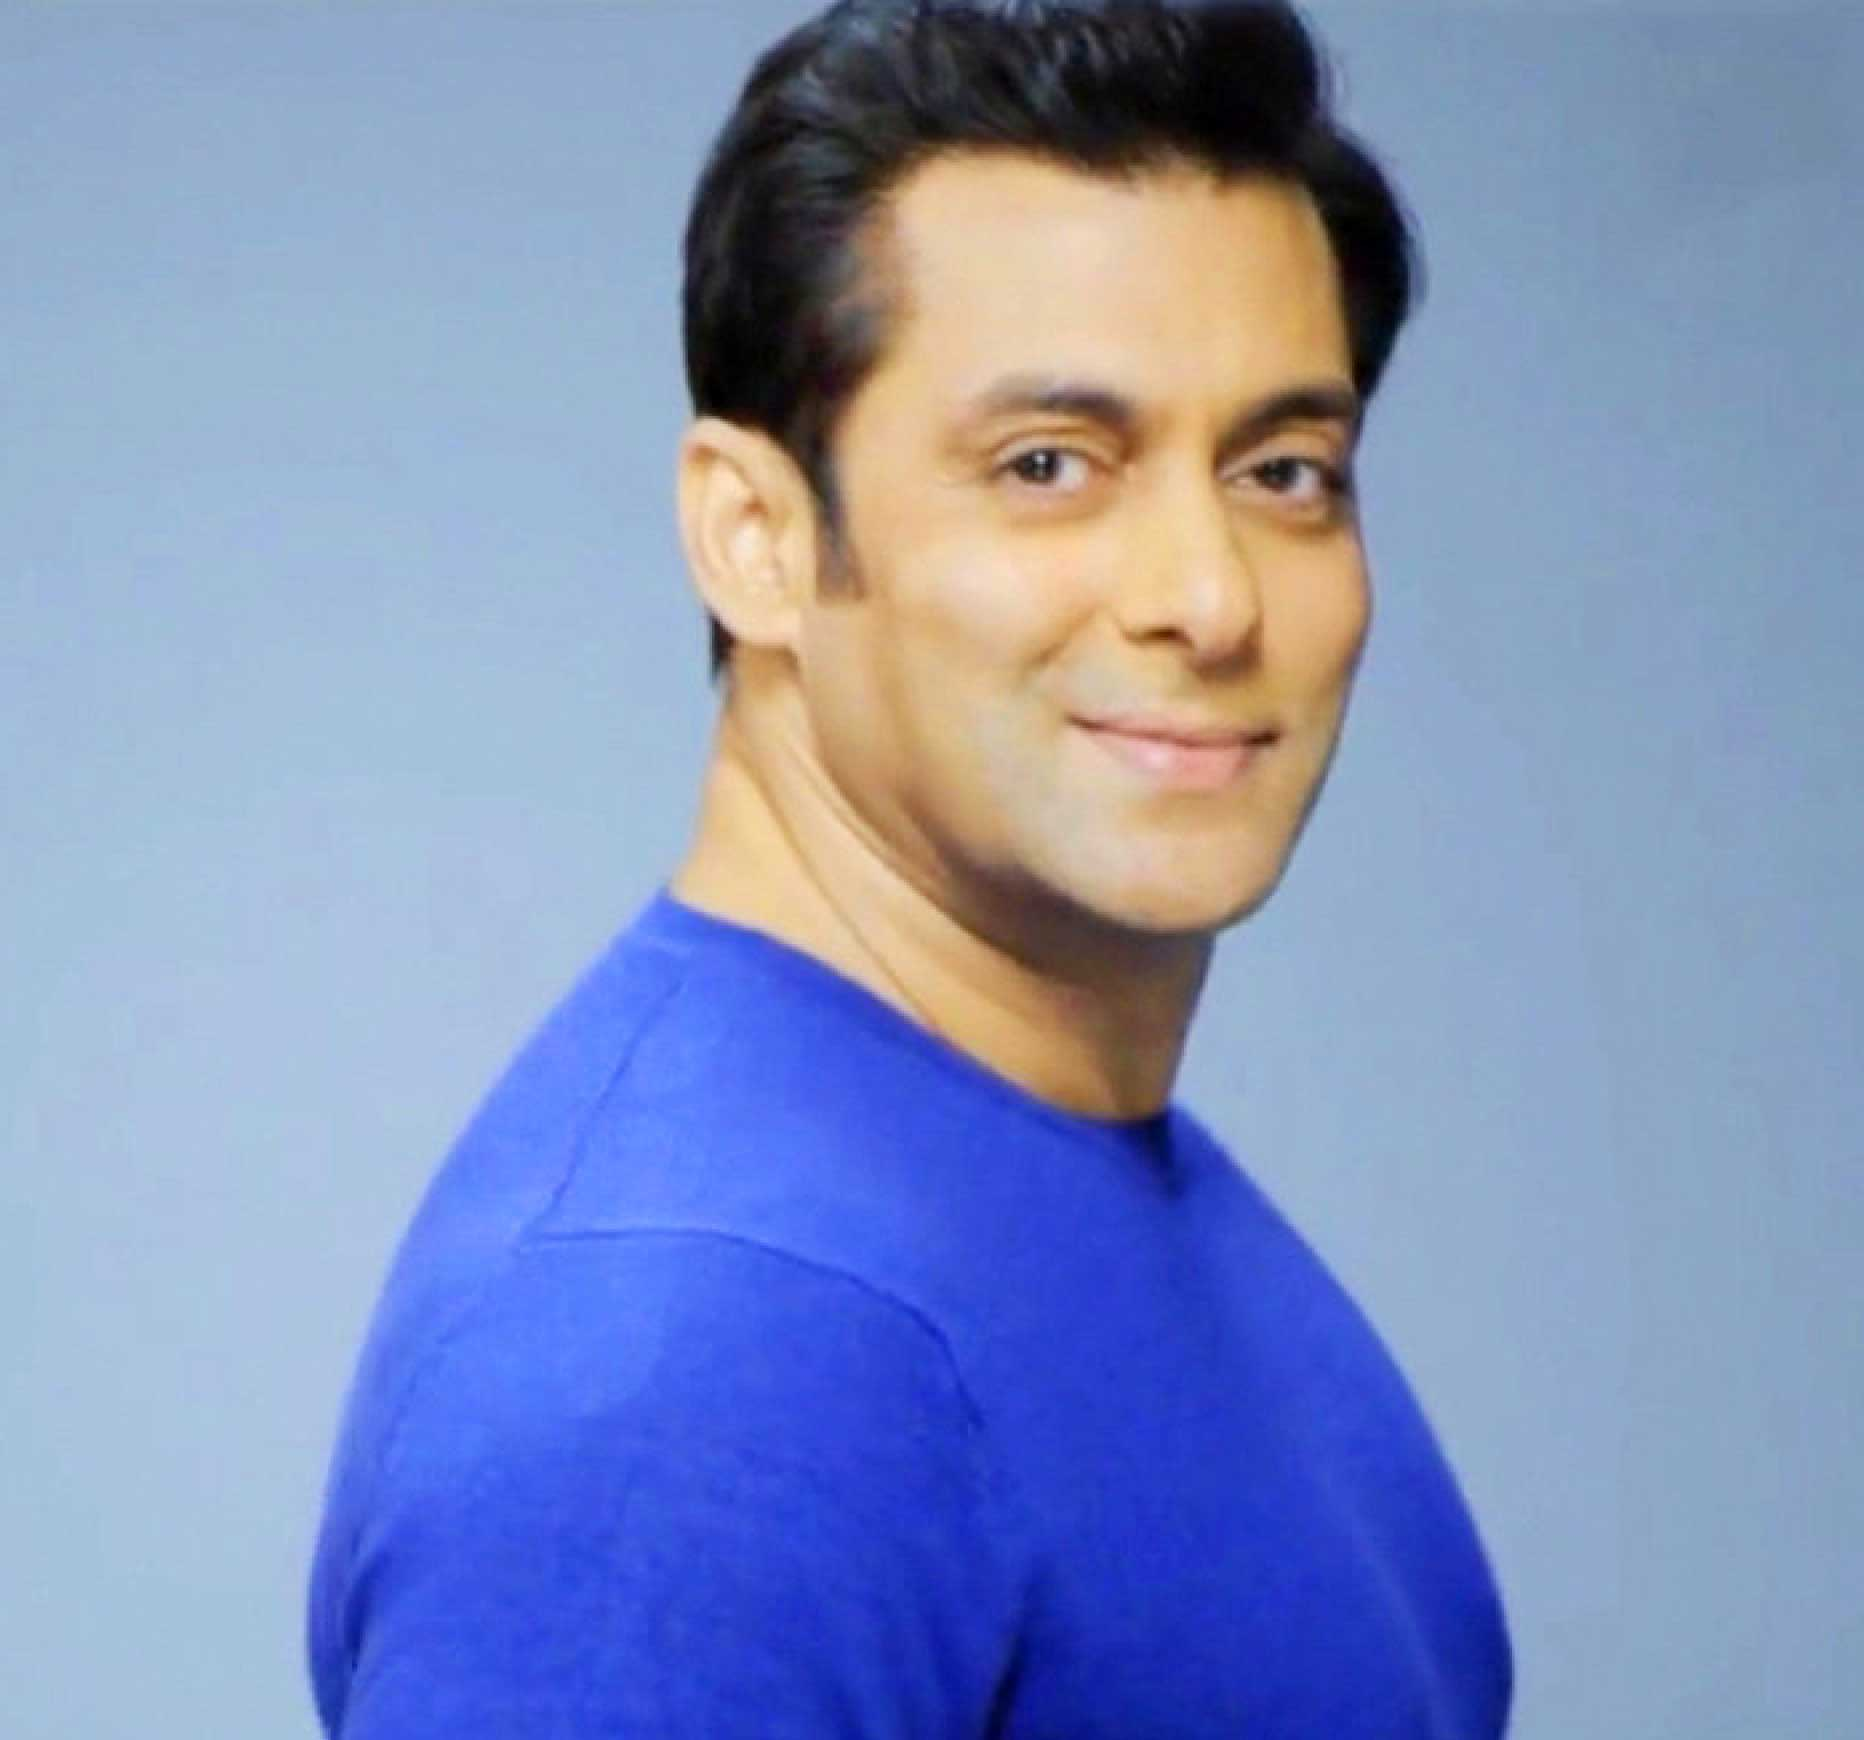 Salman Khan Images HD Free 77